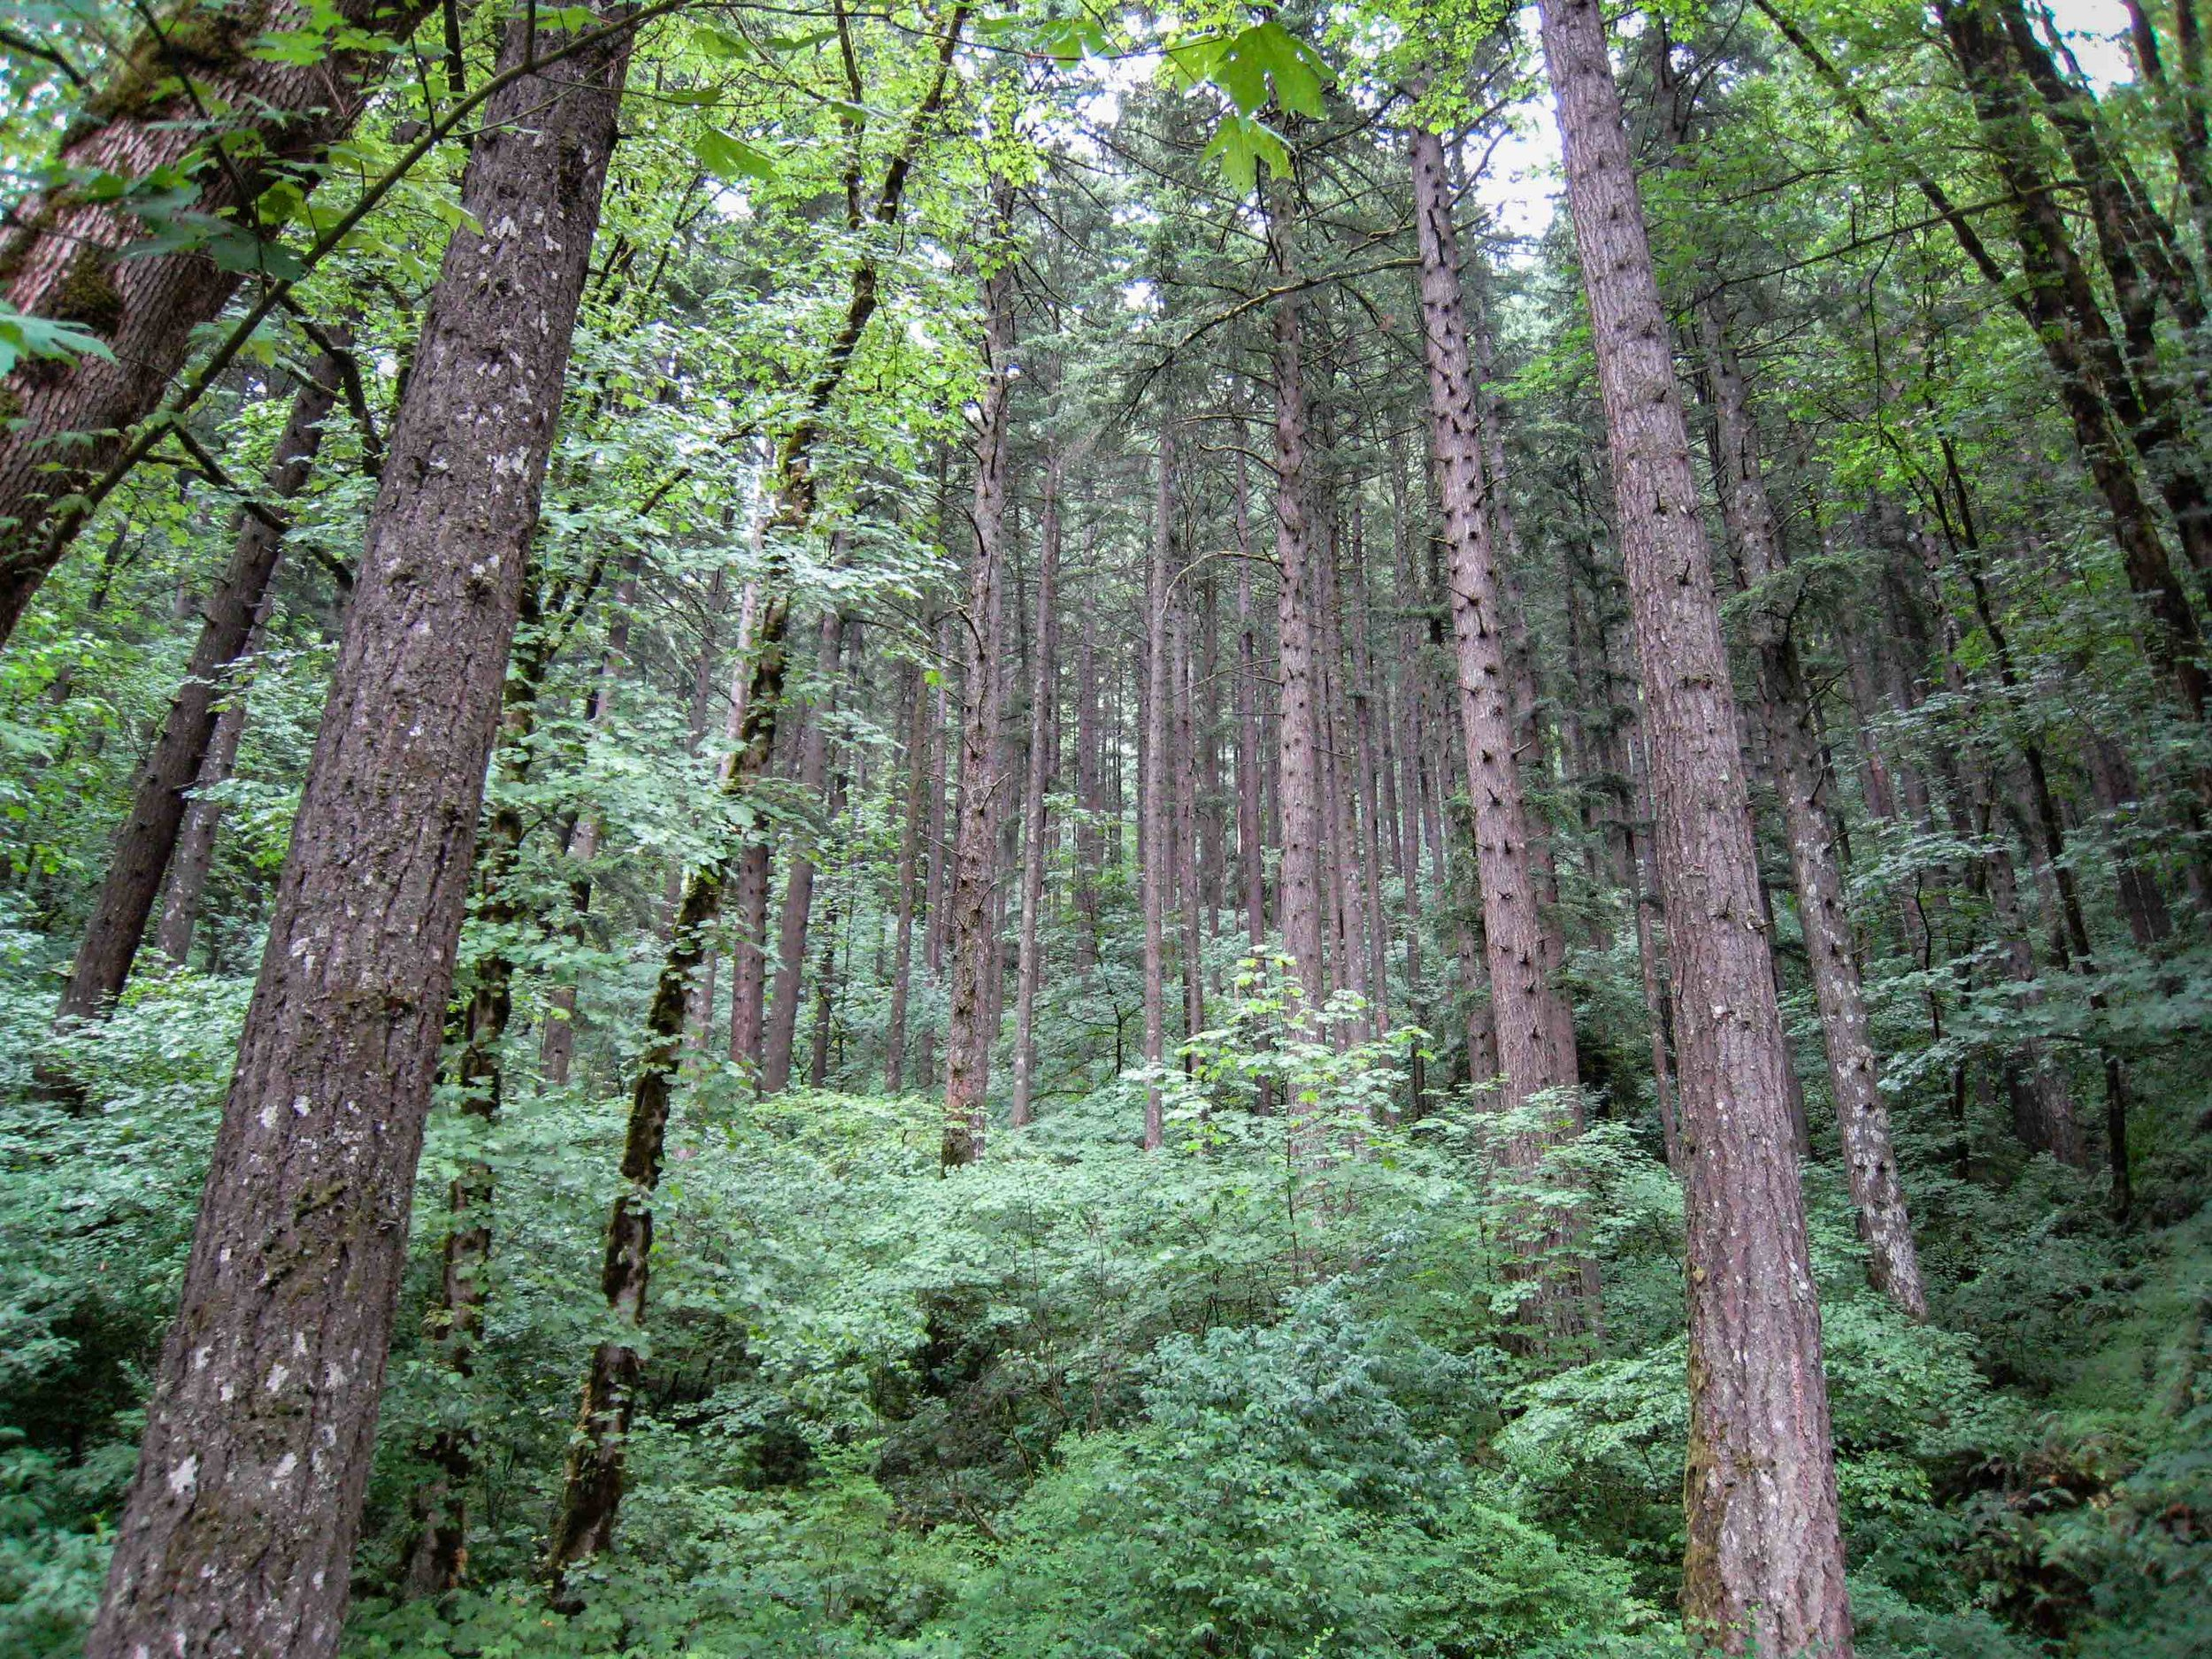 Forest along the Columbia River Gorge